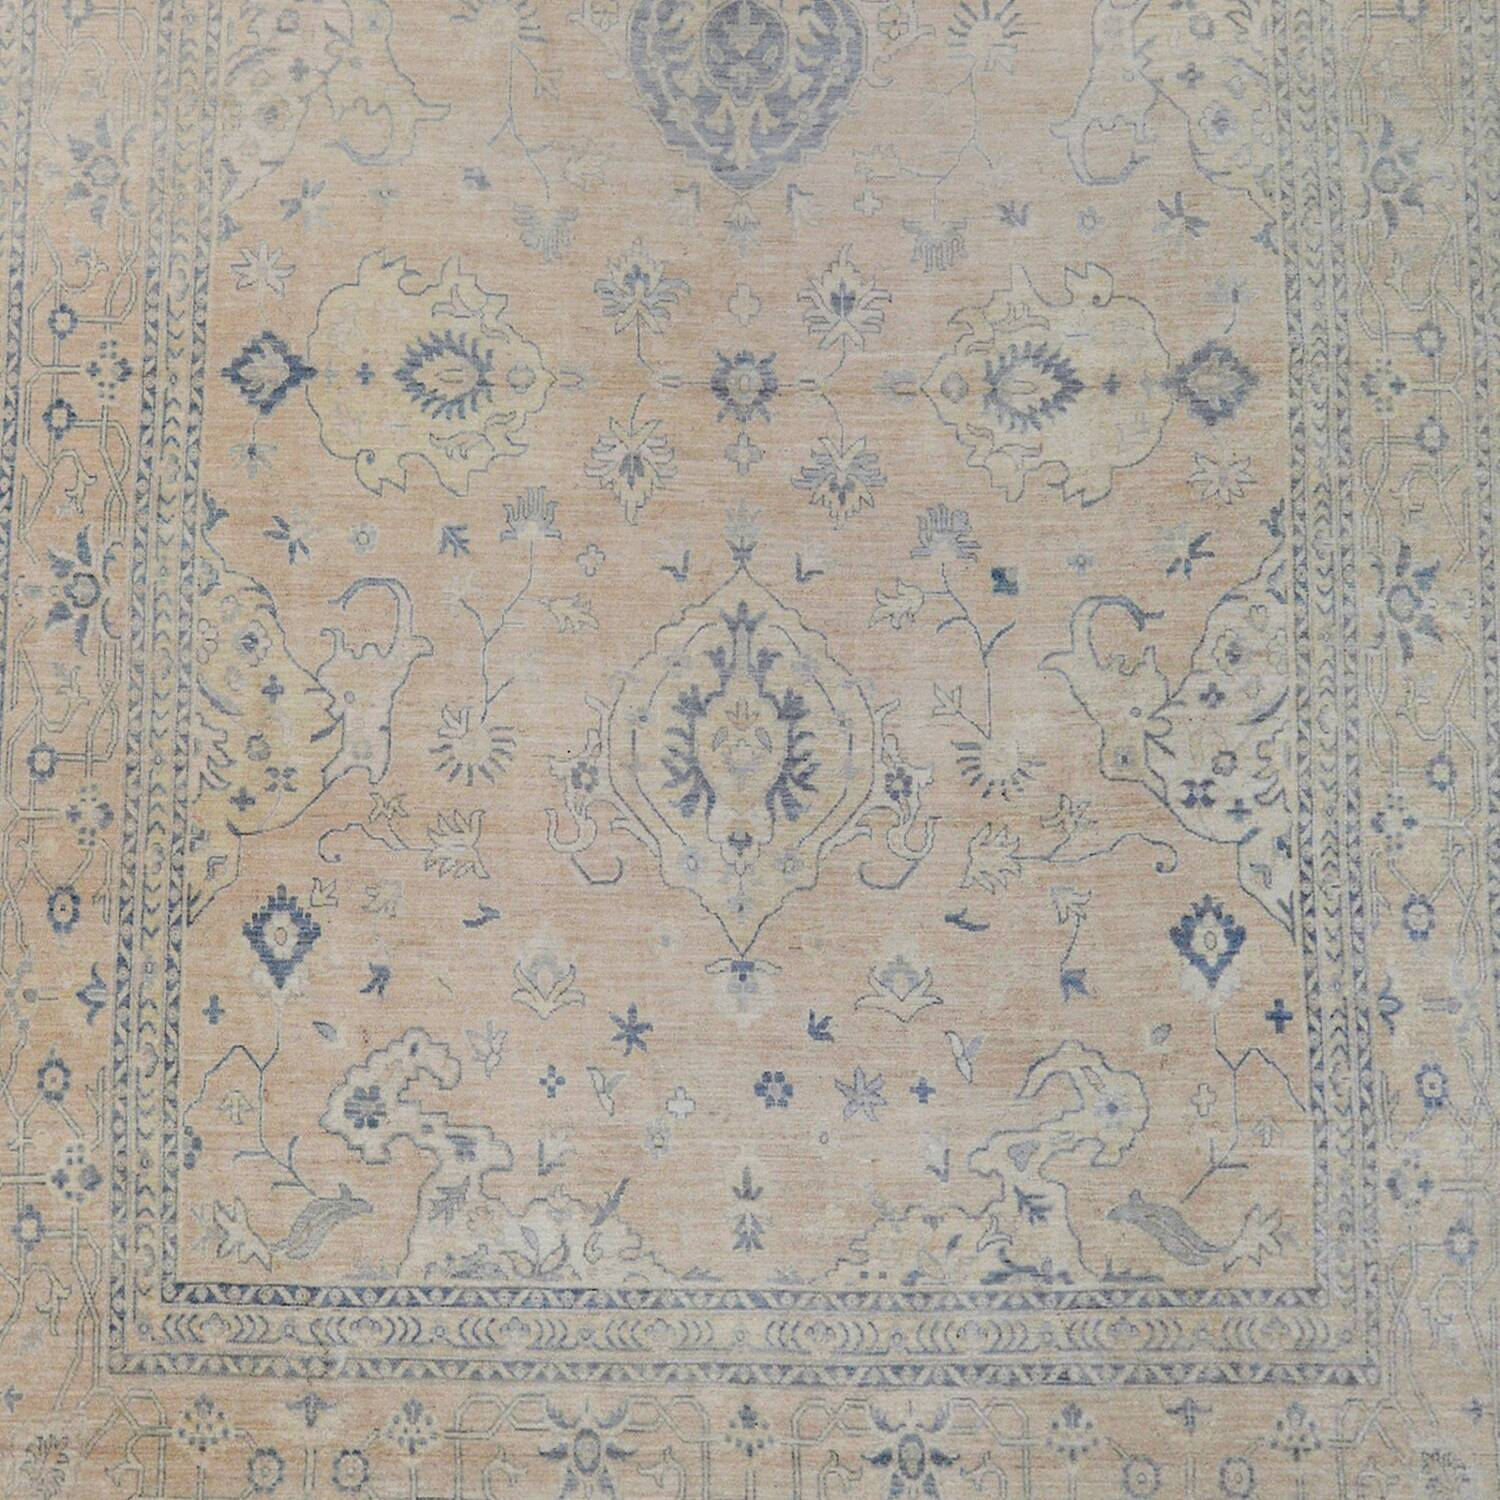 Muted Floral Oushak Turkish Area Rug 12x15 image 3